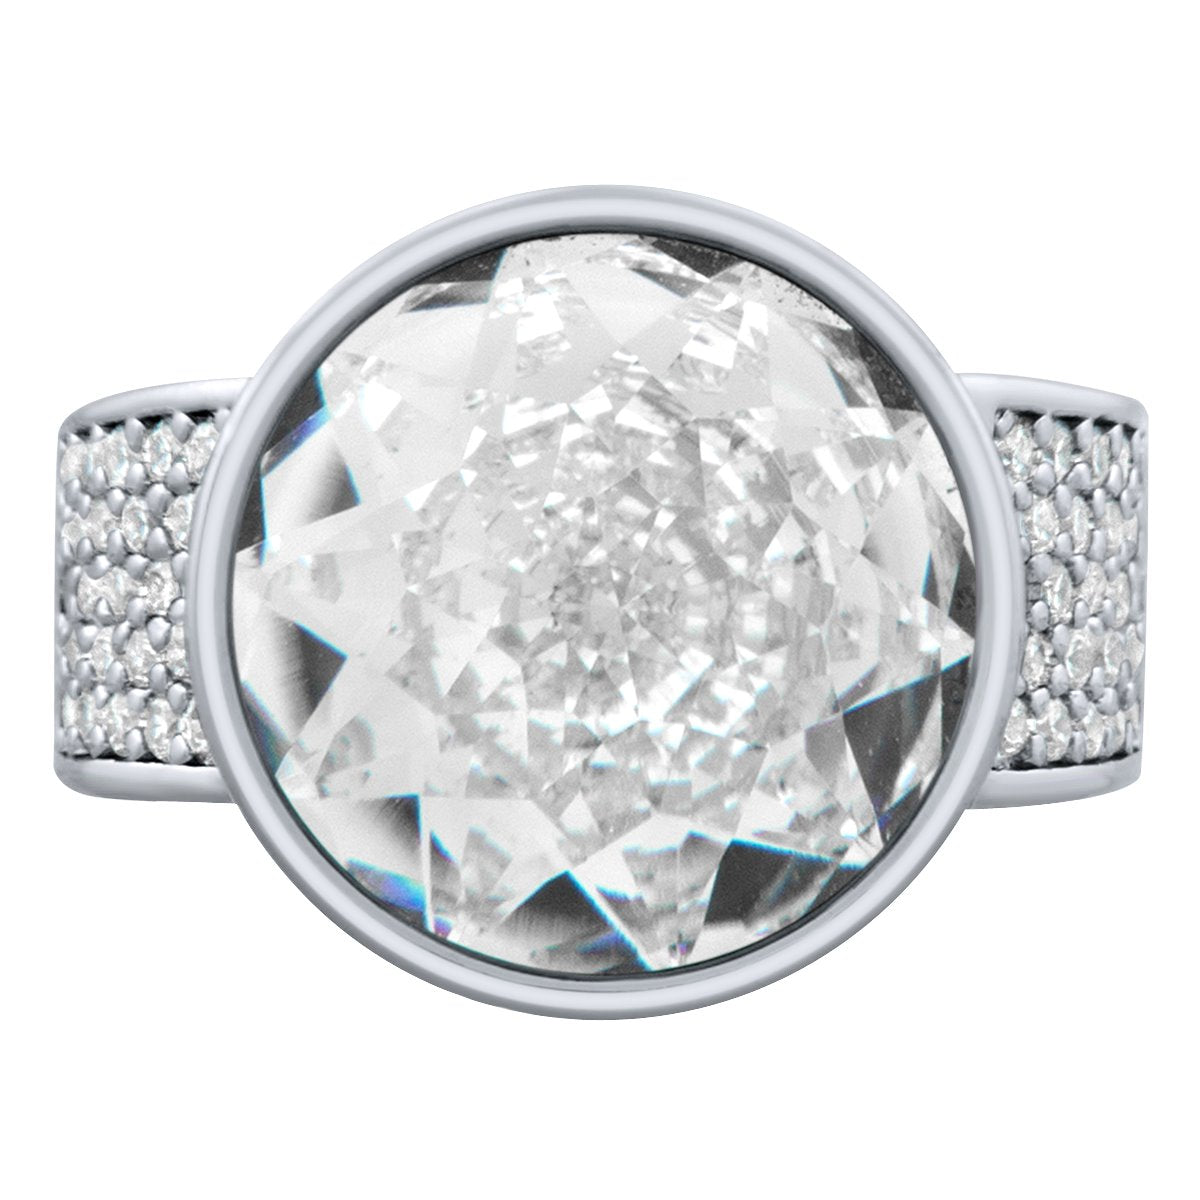 Elysees Ring Silver Crystal JOY OF SPARKLE FOREVER CRYSTALS